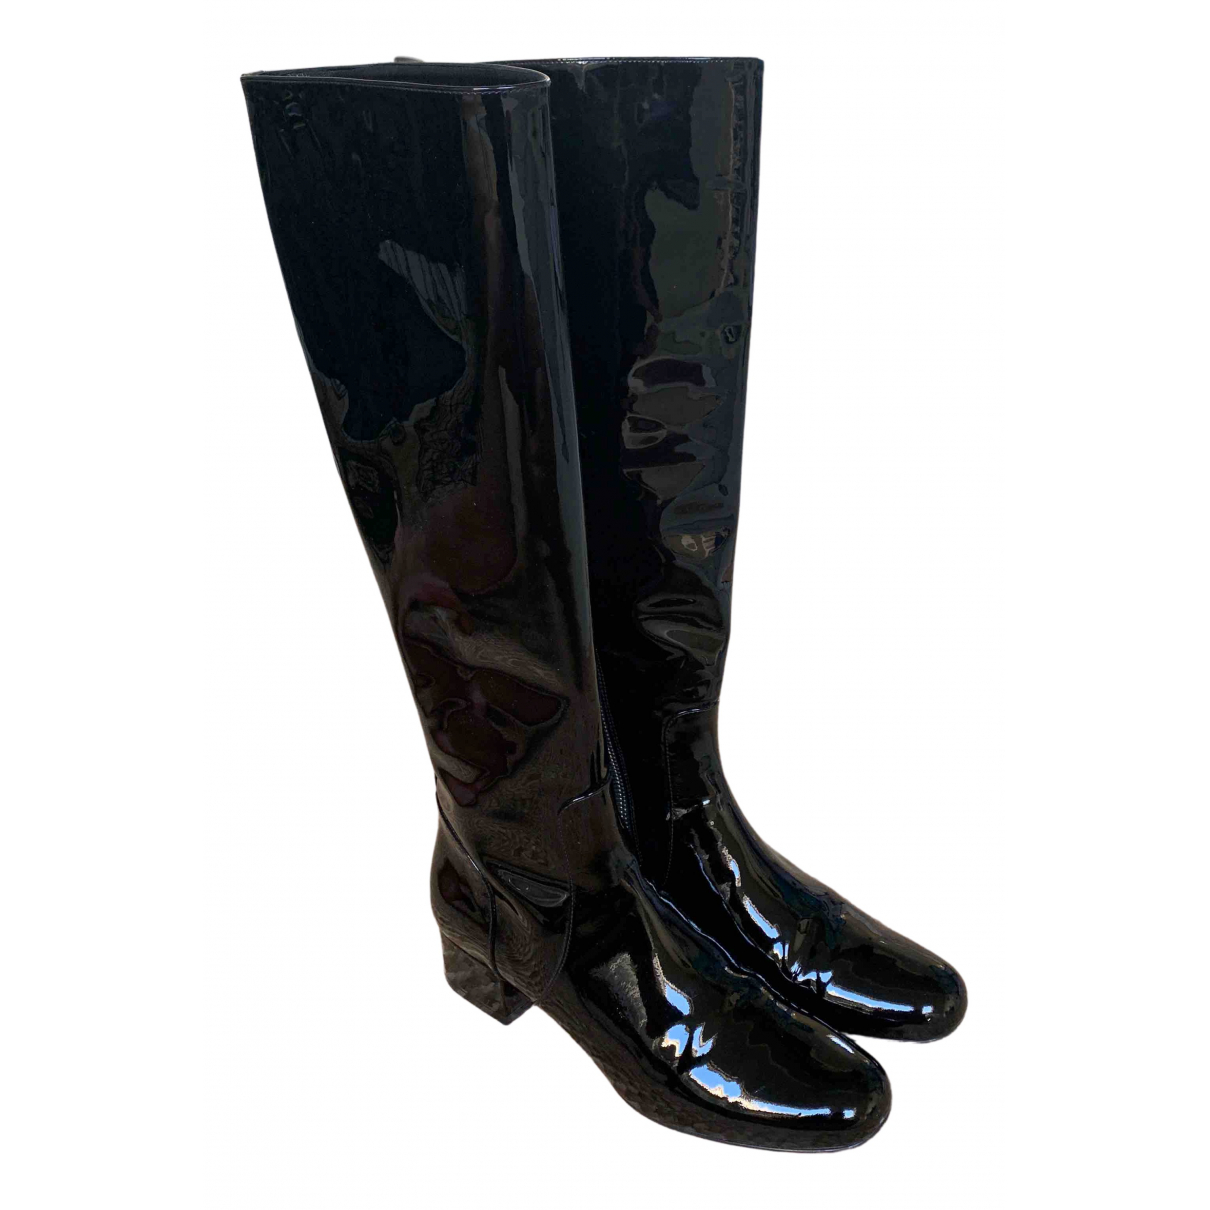 Saint Laurent N Black Patent leather Boots for Women 38.5 EU